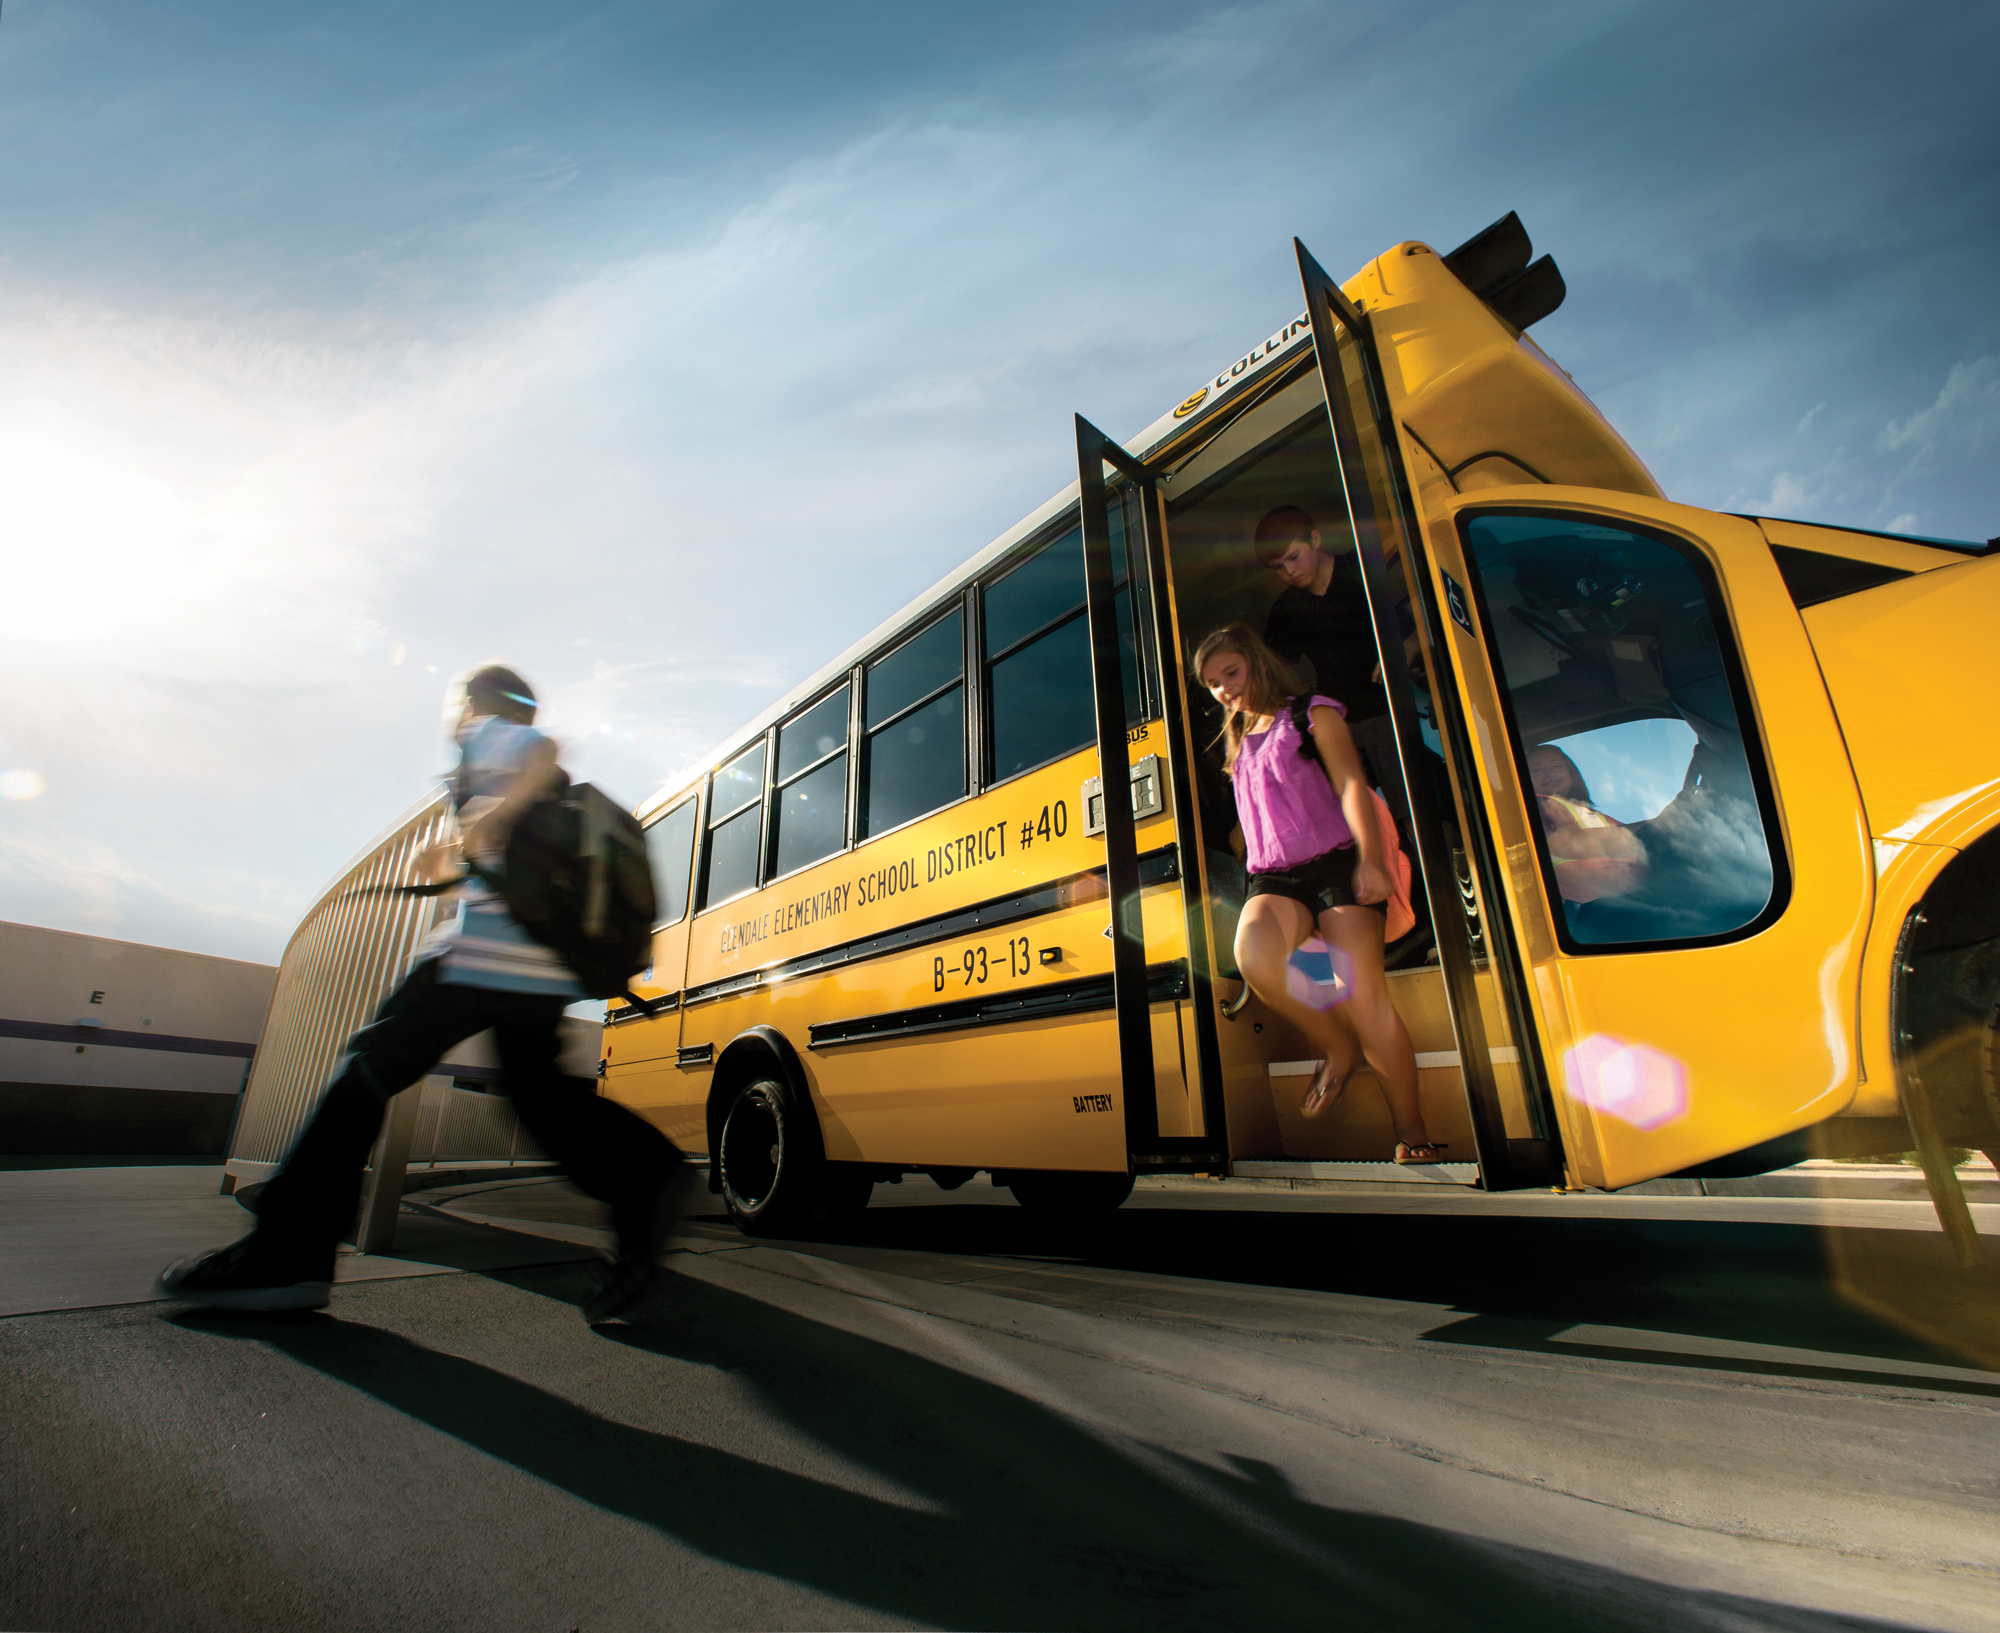 autogas powered school bus with kids exisiting the bus